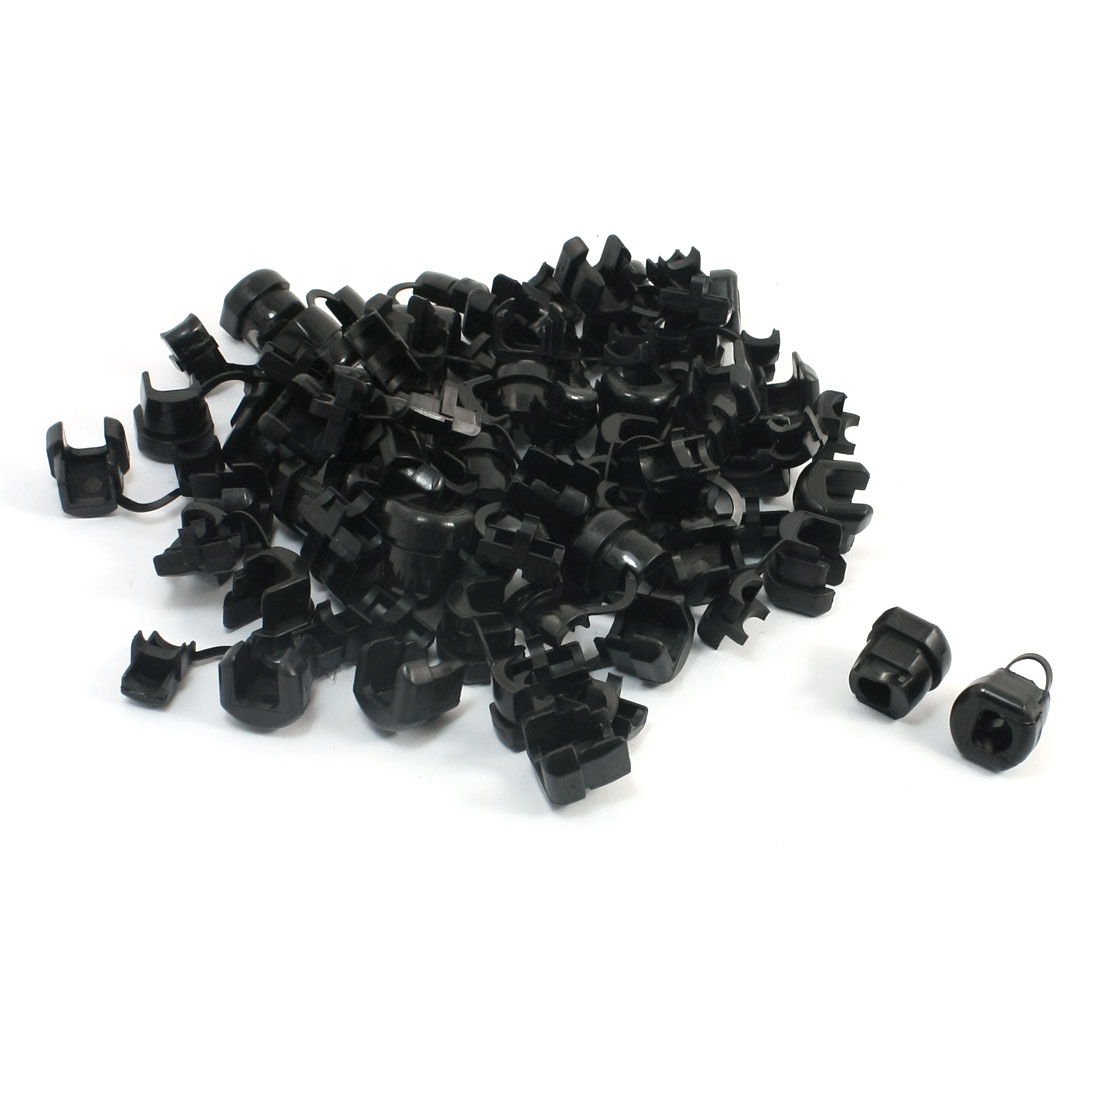 50 Pcs Wires Protectors Strain Relief Bushing for 9.2-10.5mm Round Cables